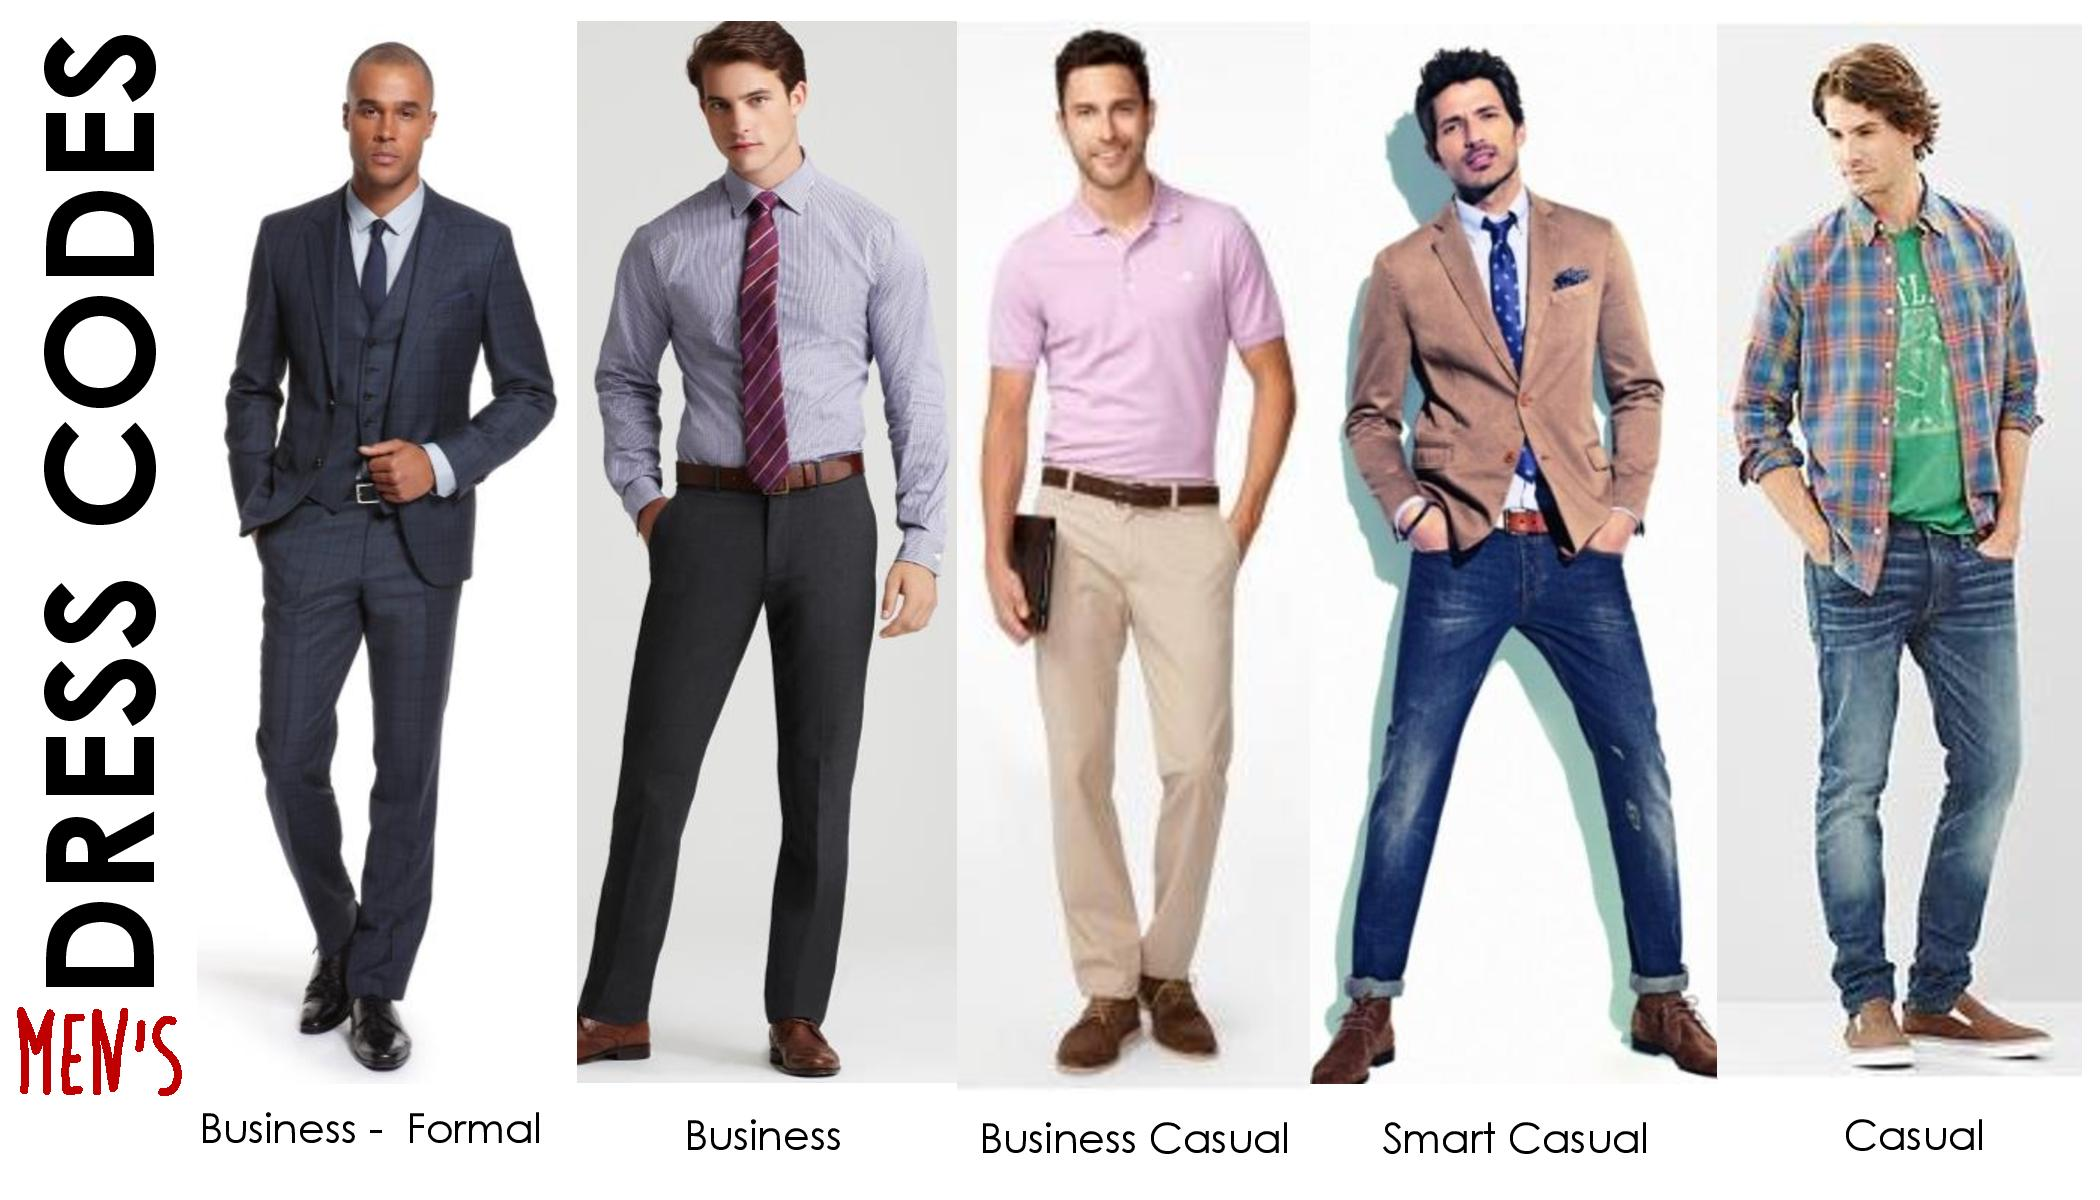 Dress code business casual